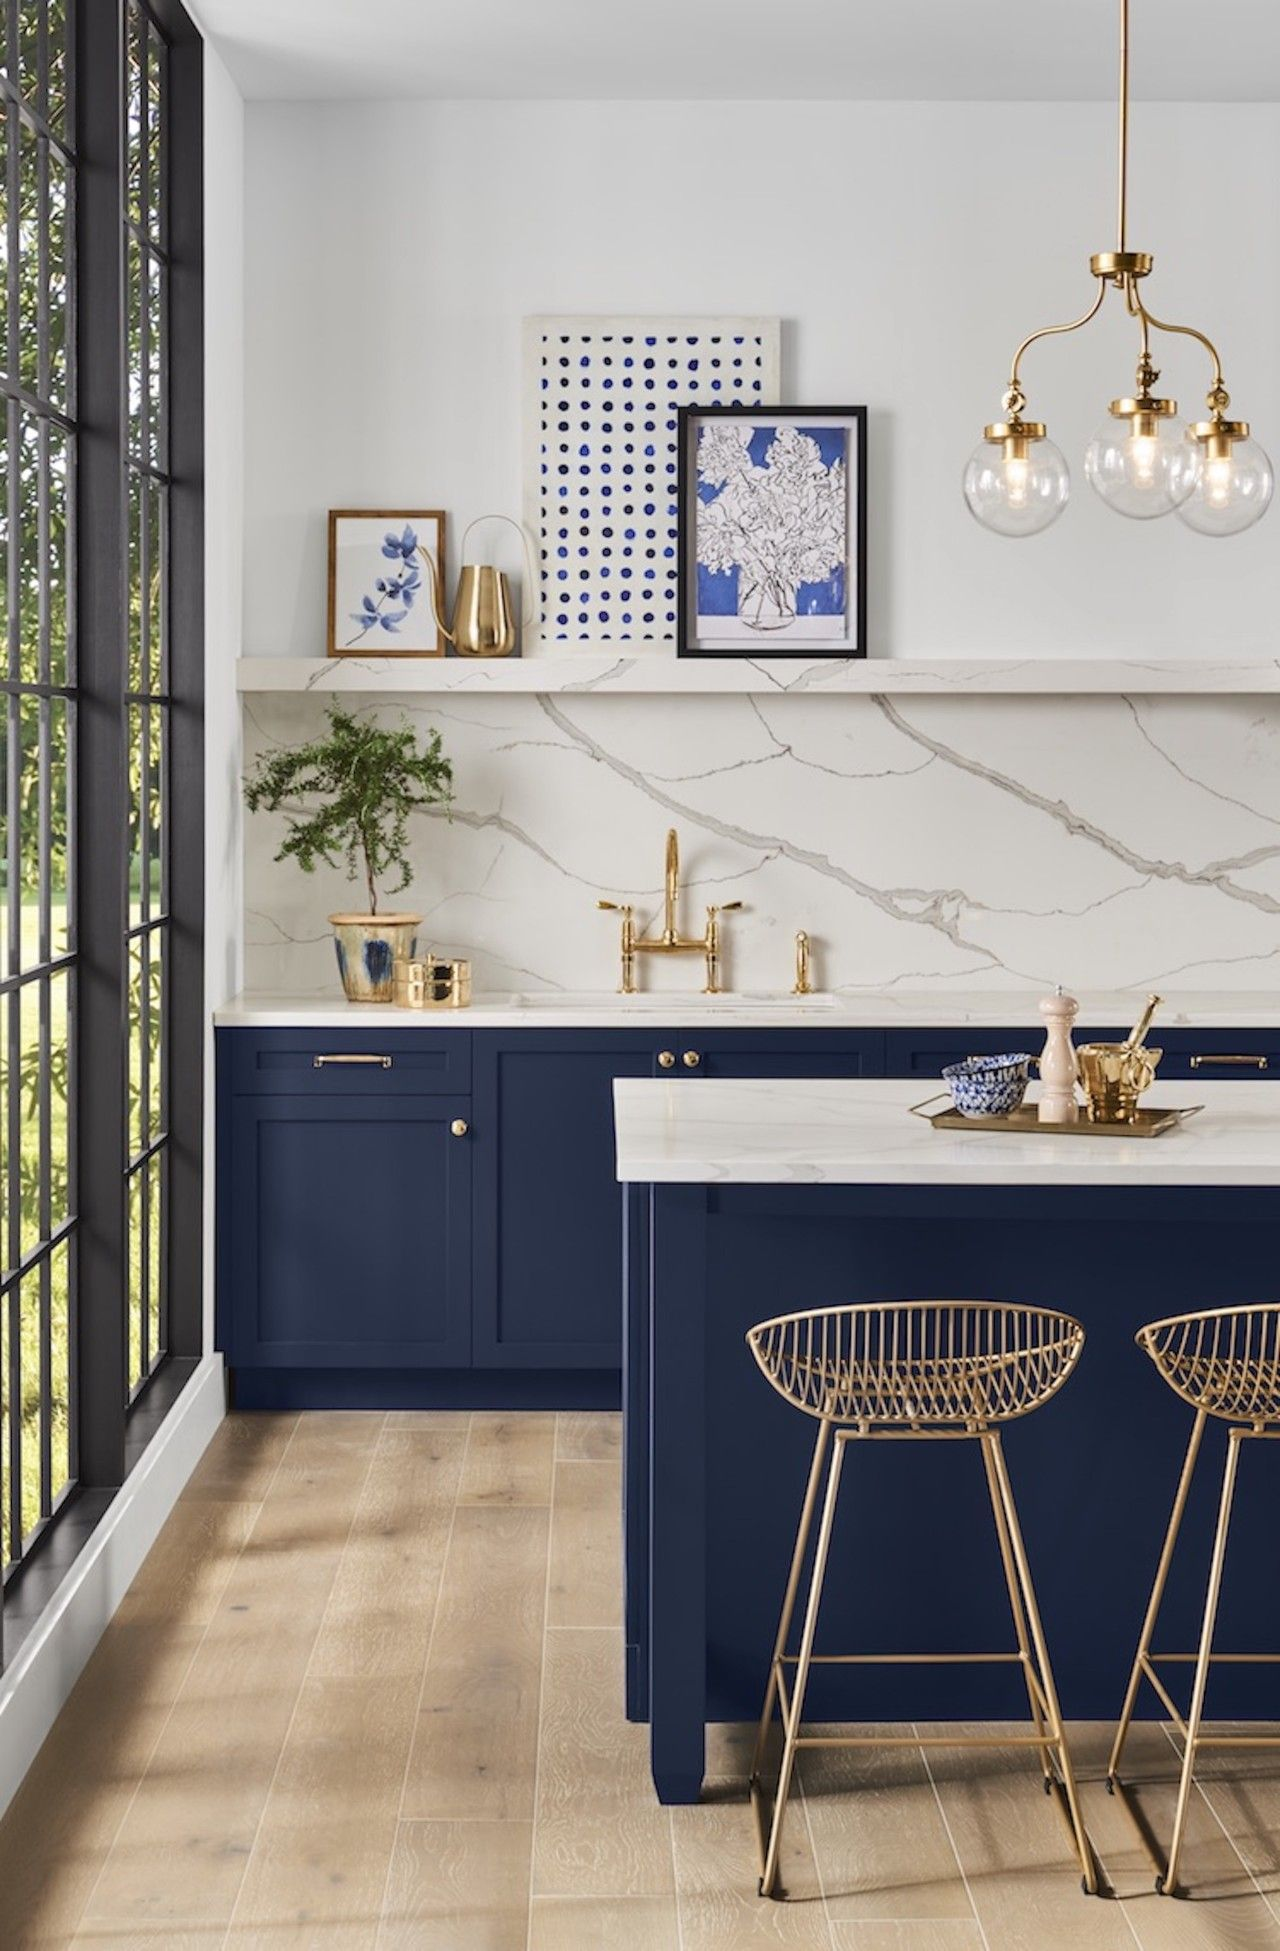 Kitchen Wall Colors Influence The Environment From Background Darbylanefurniture Com In 2020 Grey Kitchen Walls Kitchen Wall Colors Kitchen Remodel Small